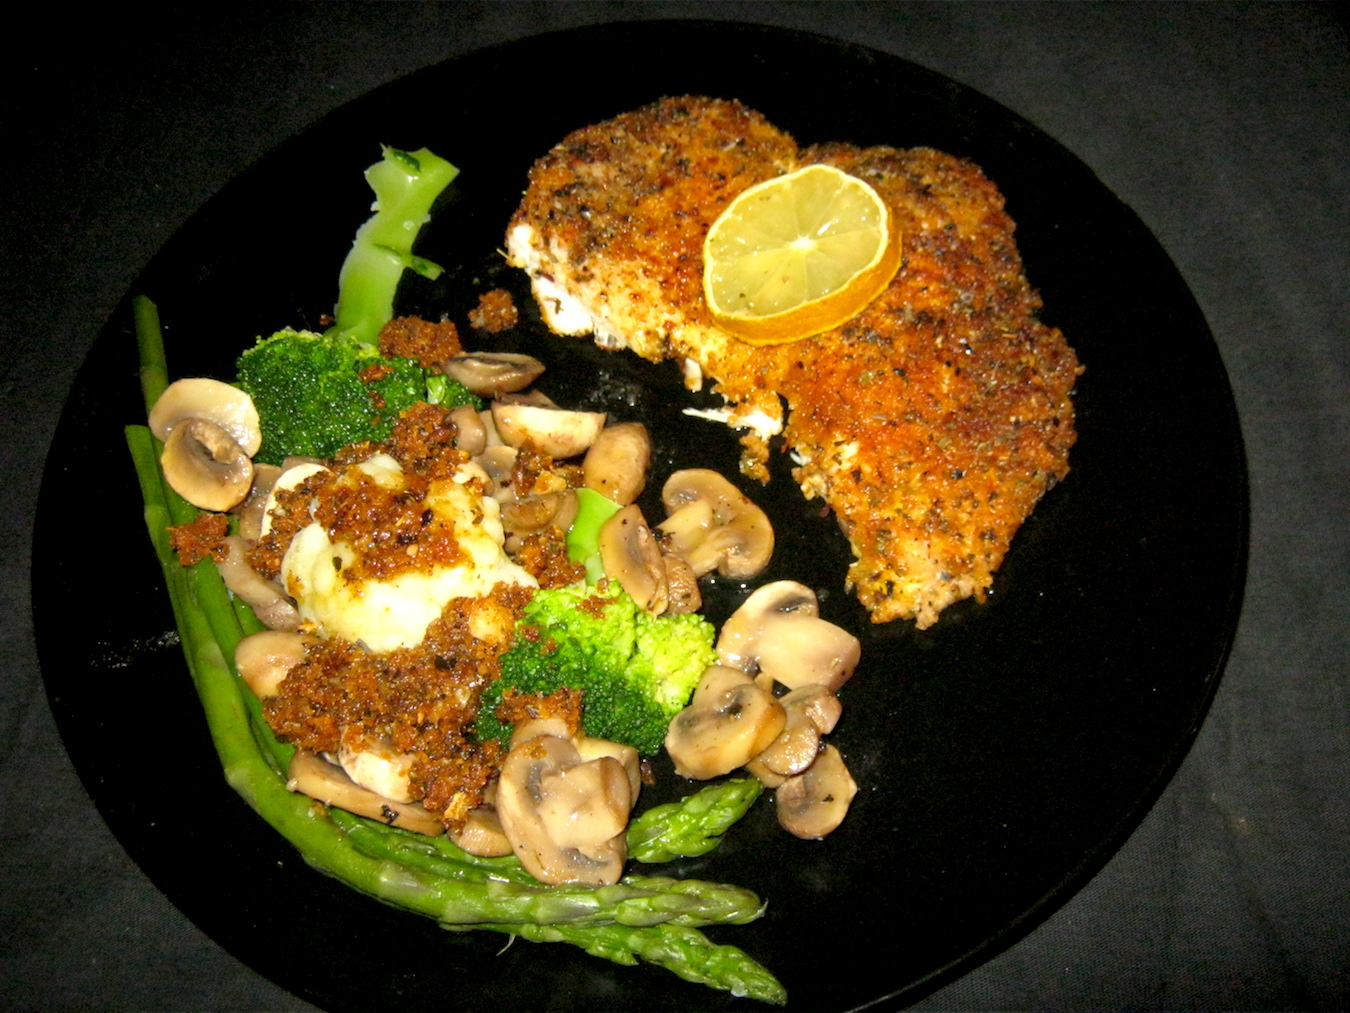 Chicken Schnitzel with green asparagus, button mushrooms, broccoli, cauliflower and buttered breadcrumbs